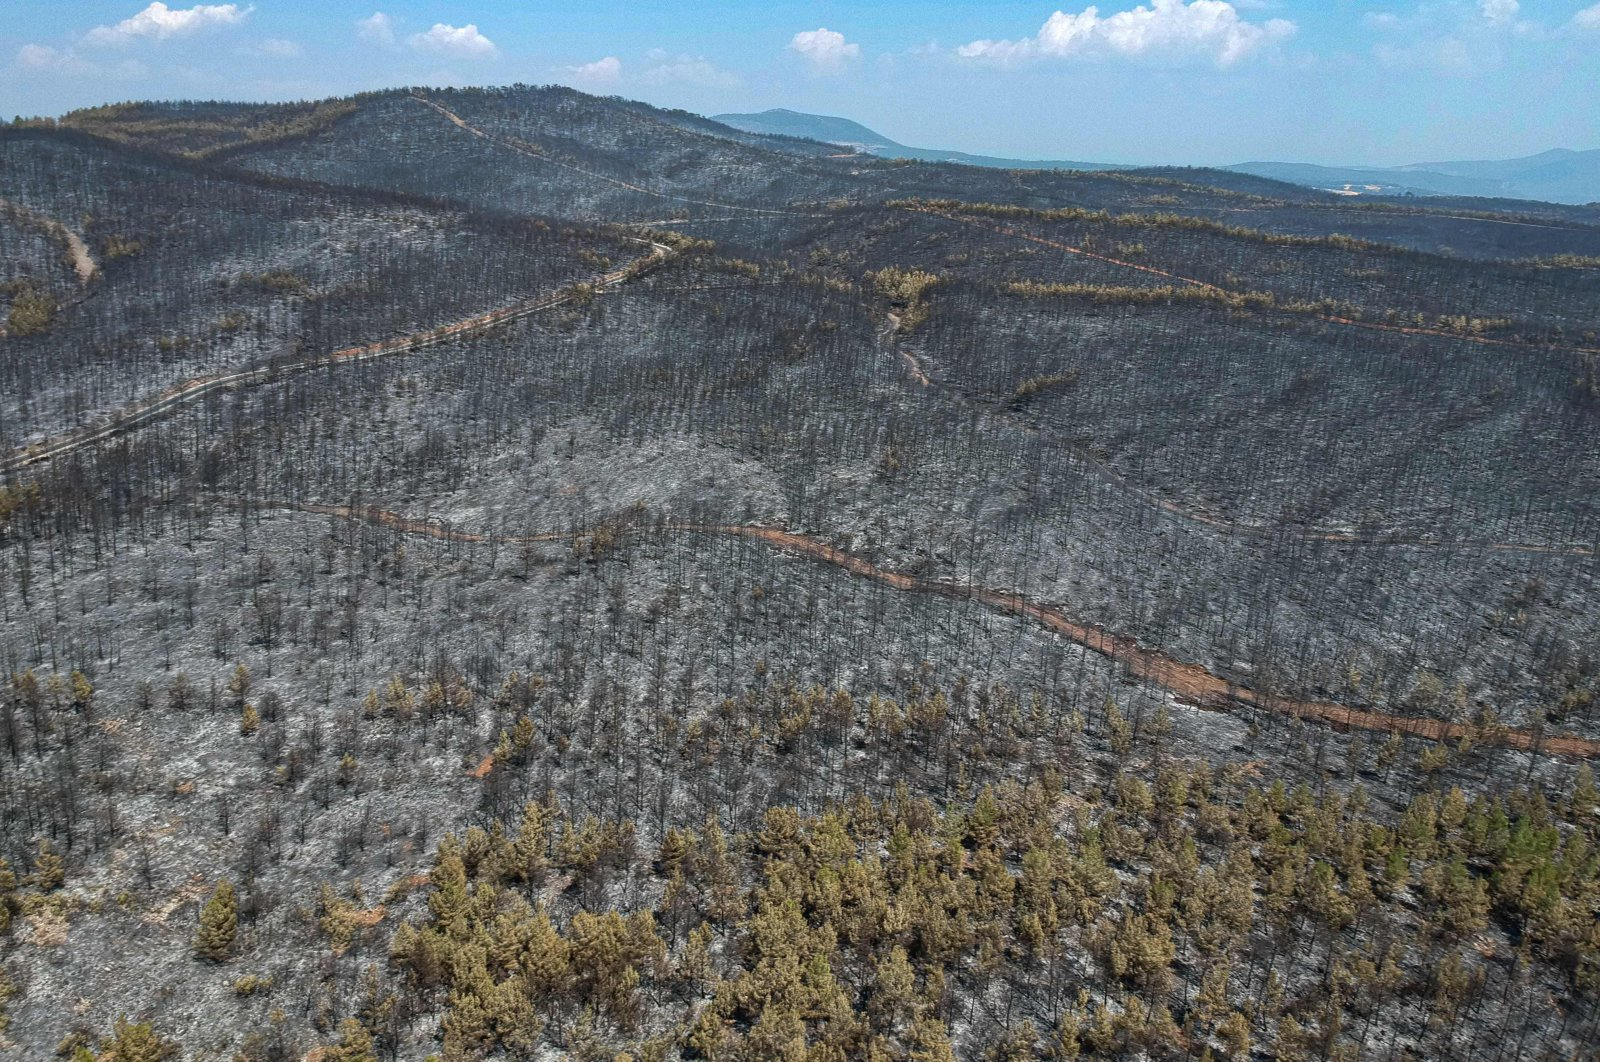 A ravaged area and burnt trees in Muğla district, southern Turkey, Aug. 7, 2021. (AFP Photo)